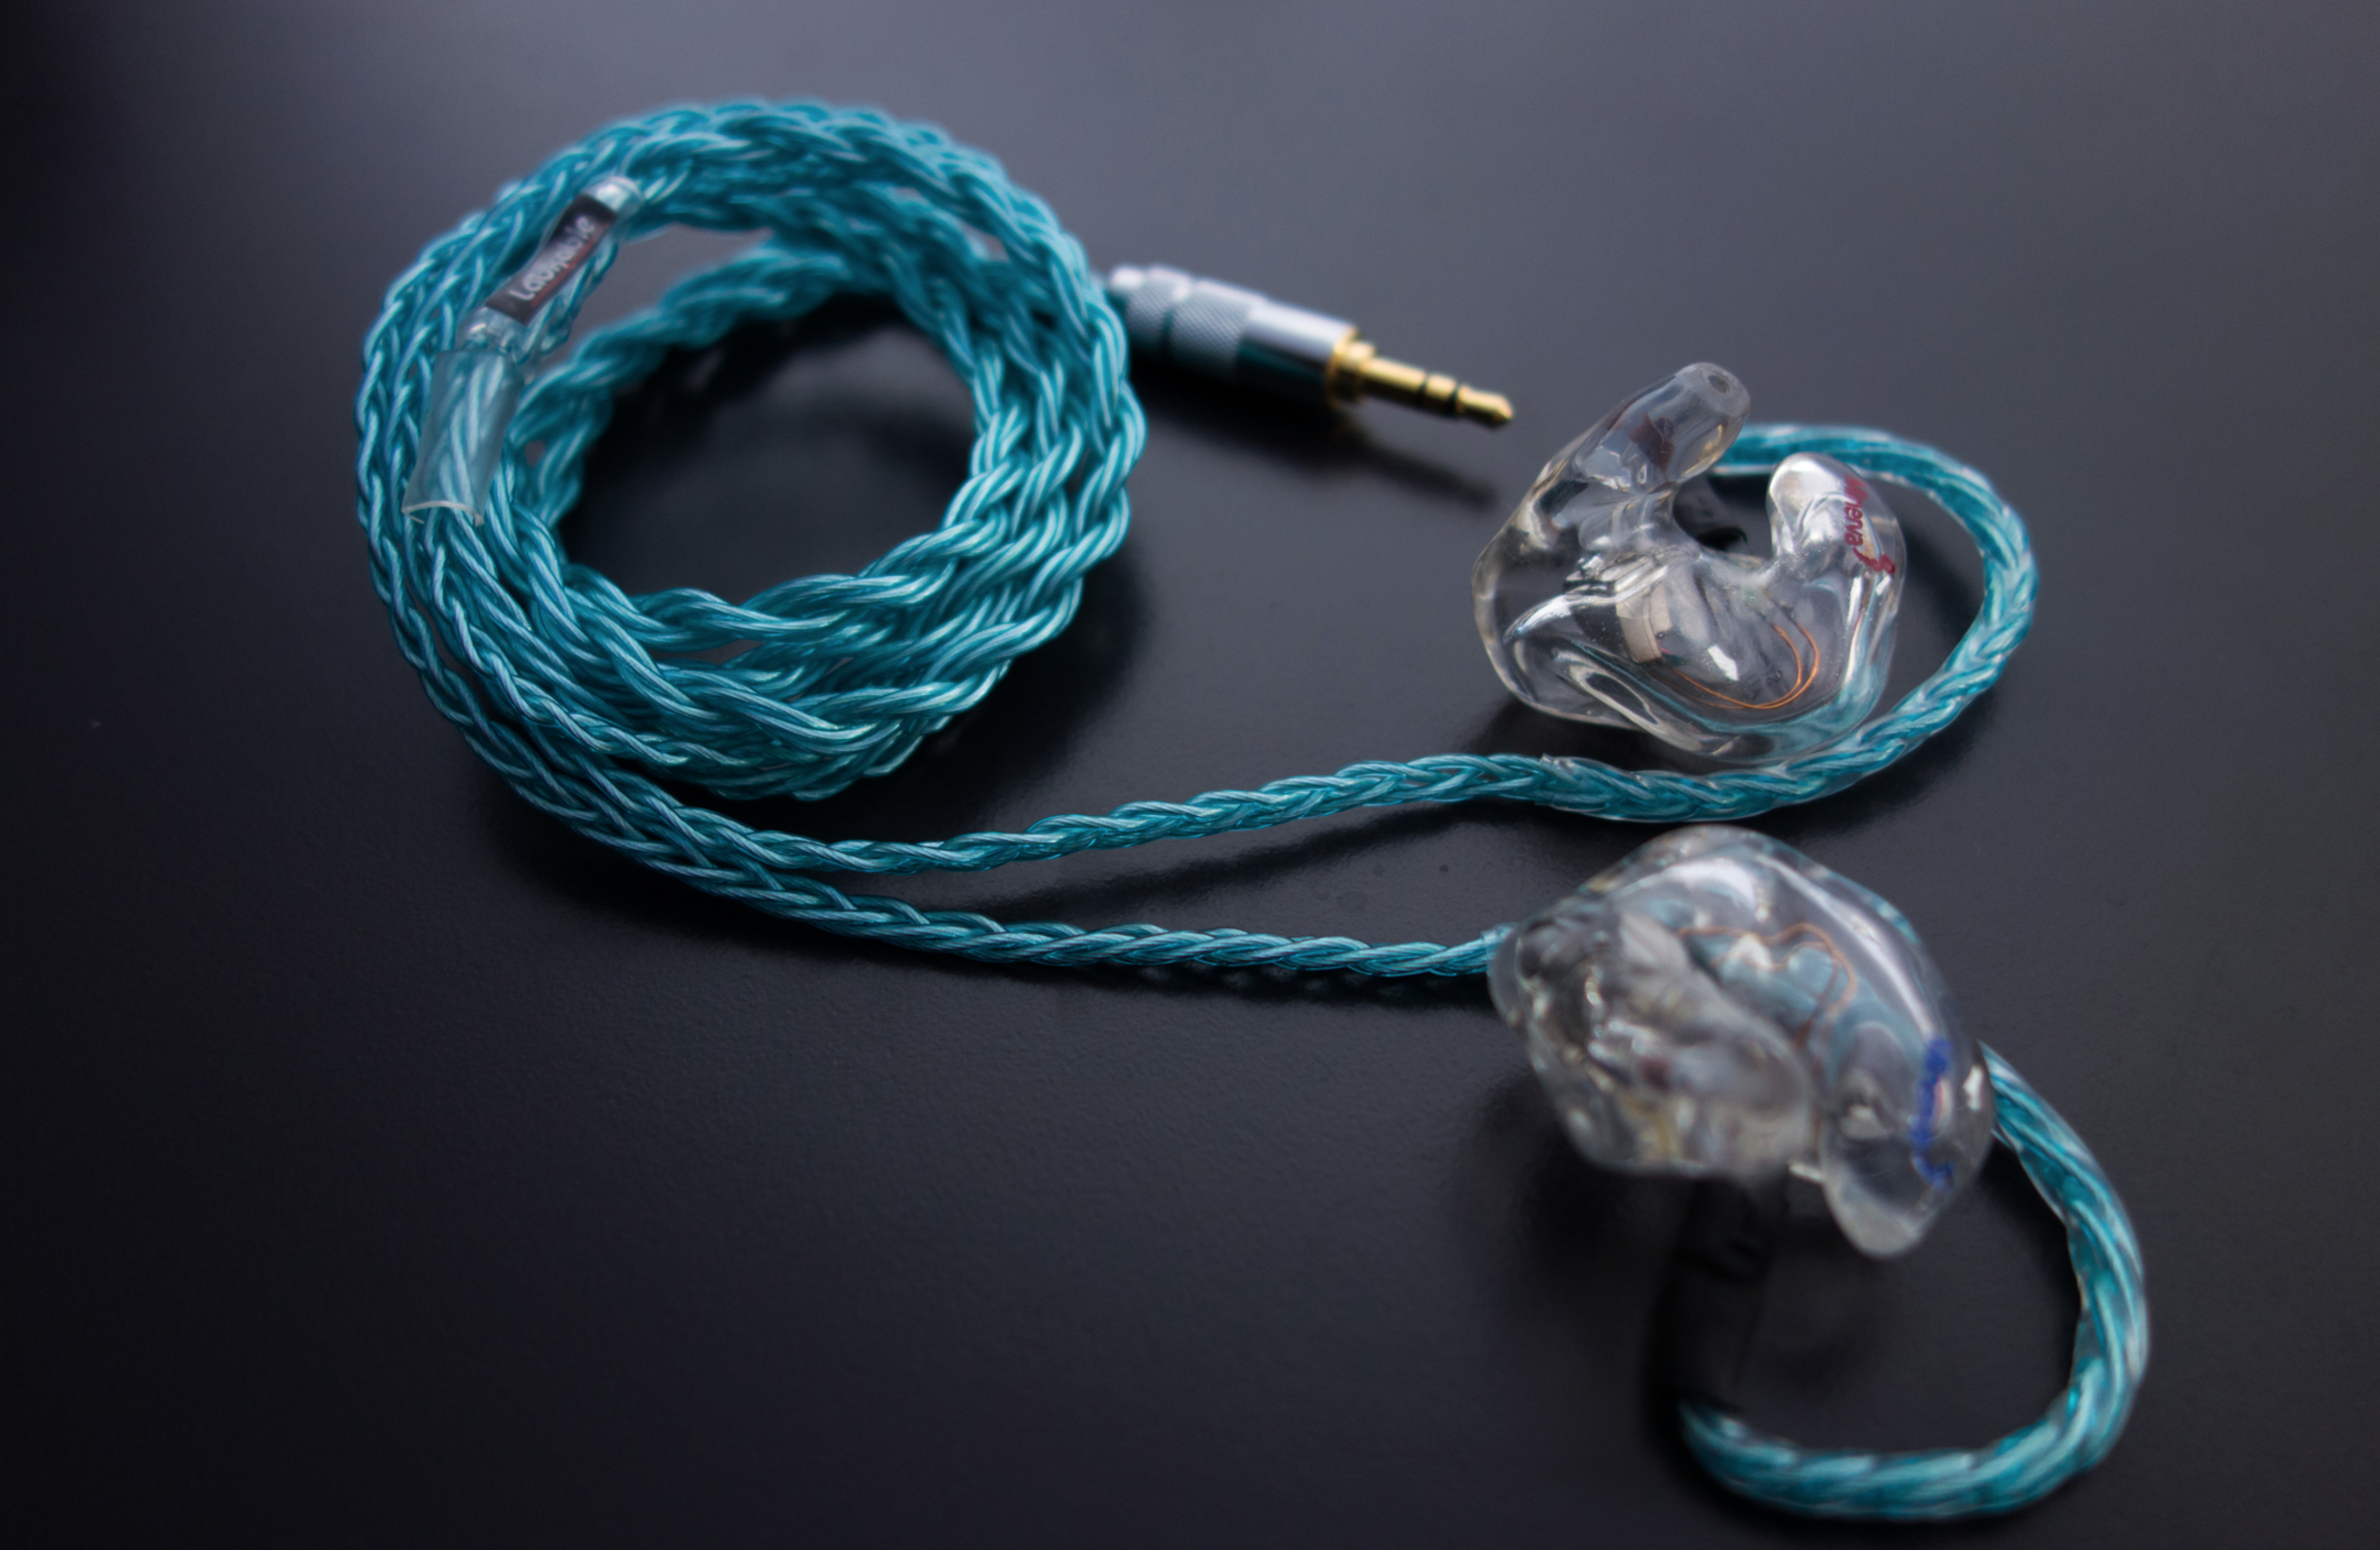 My own Minerva custom in ear monitors with a custom Blue Horizon cable from Labkable.